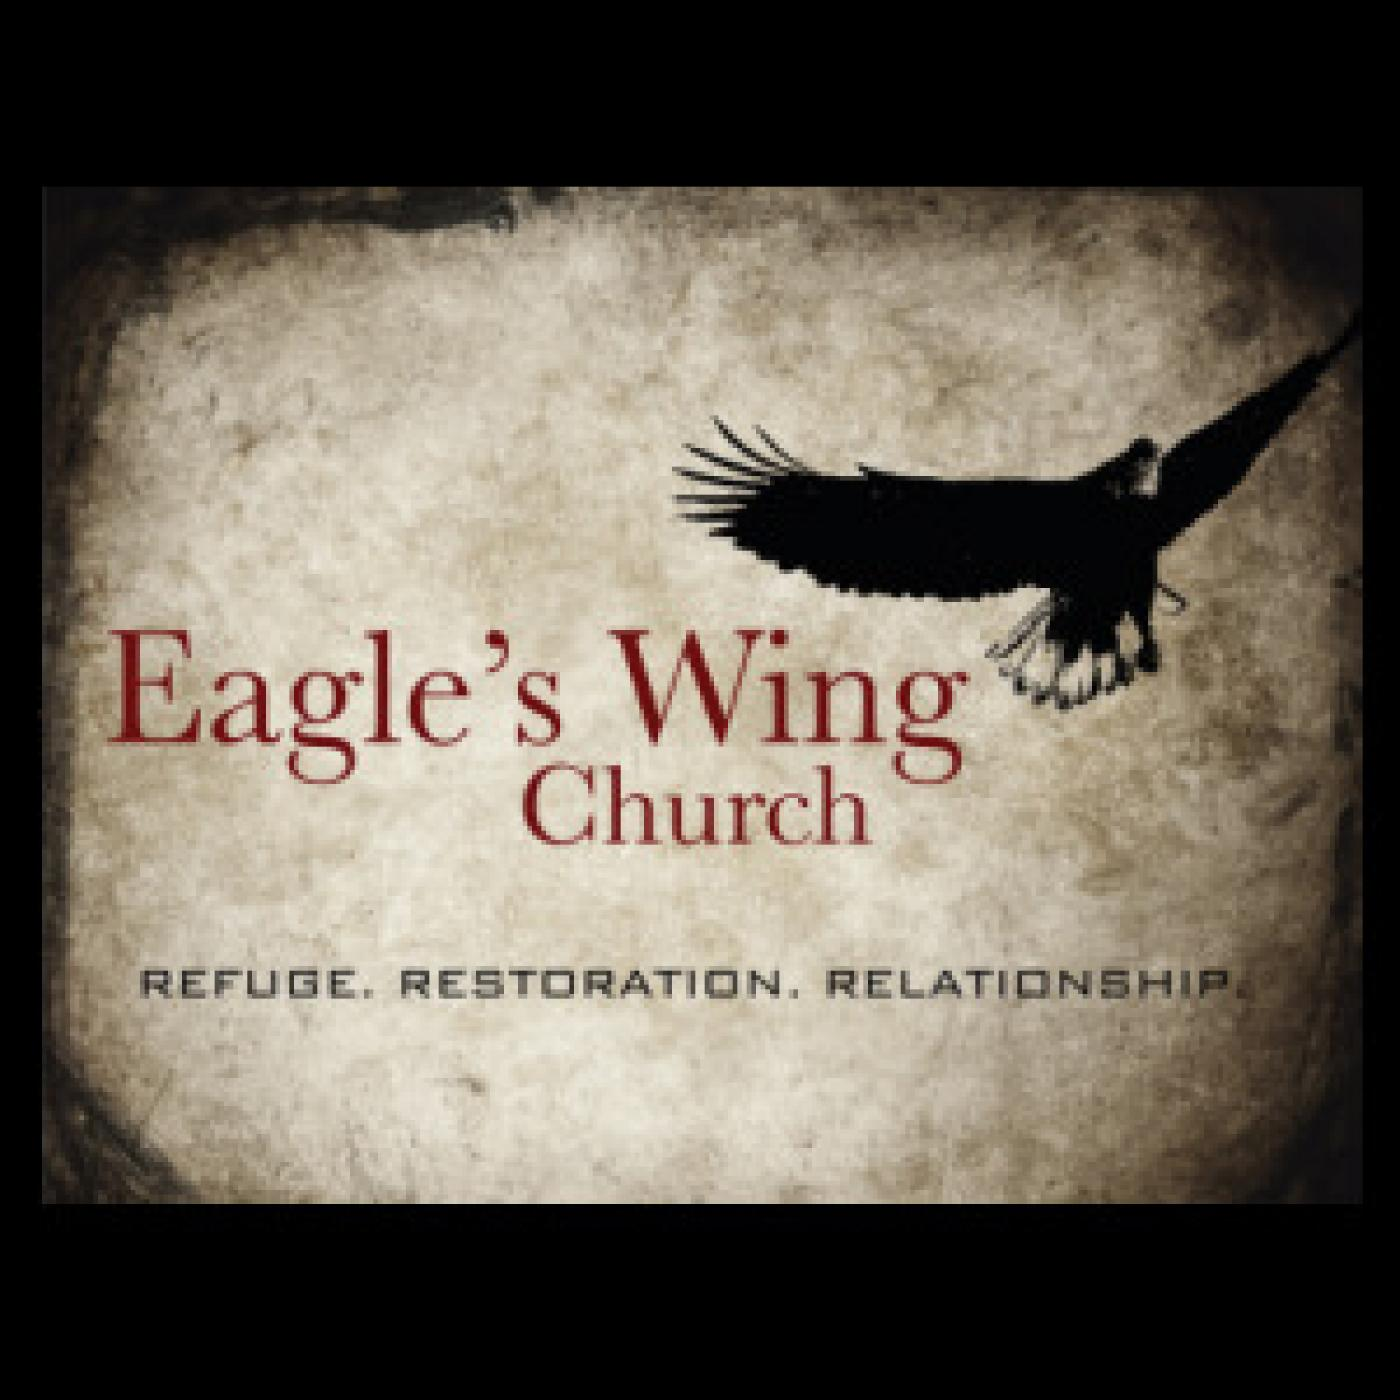 Eagle's Wing Church